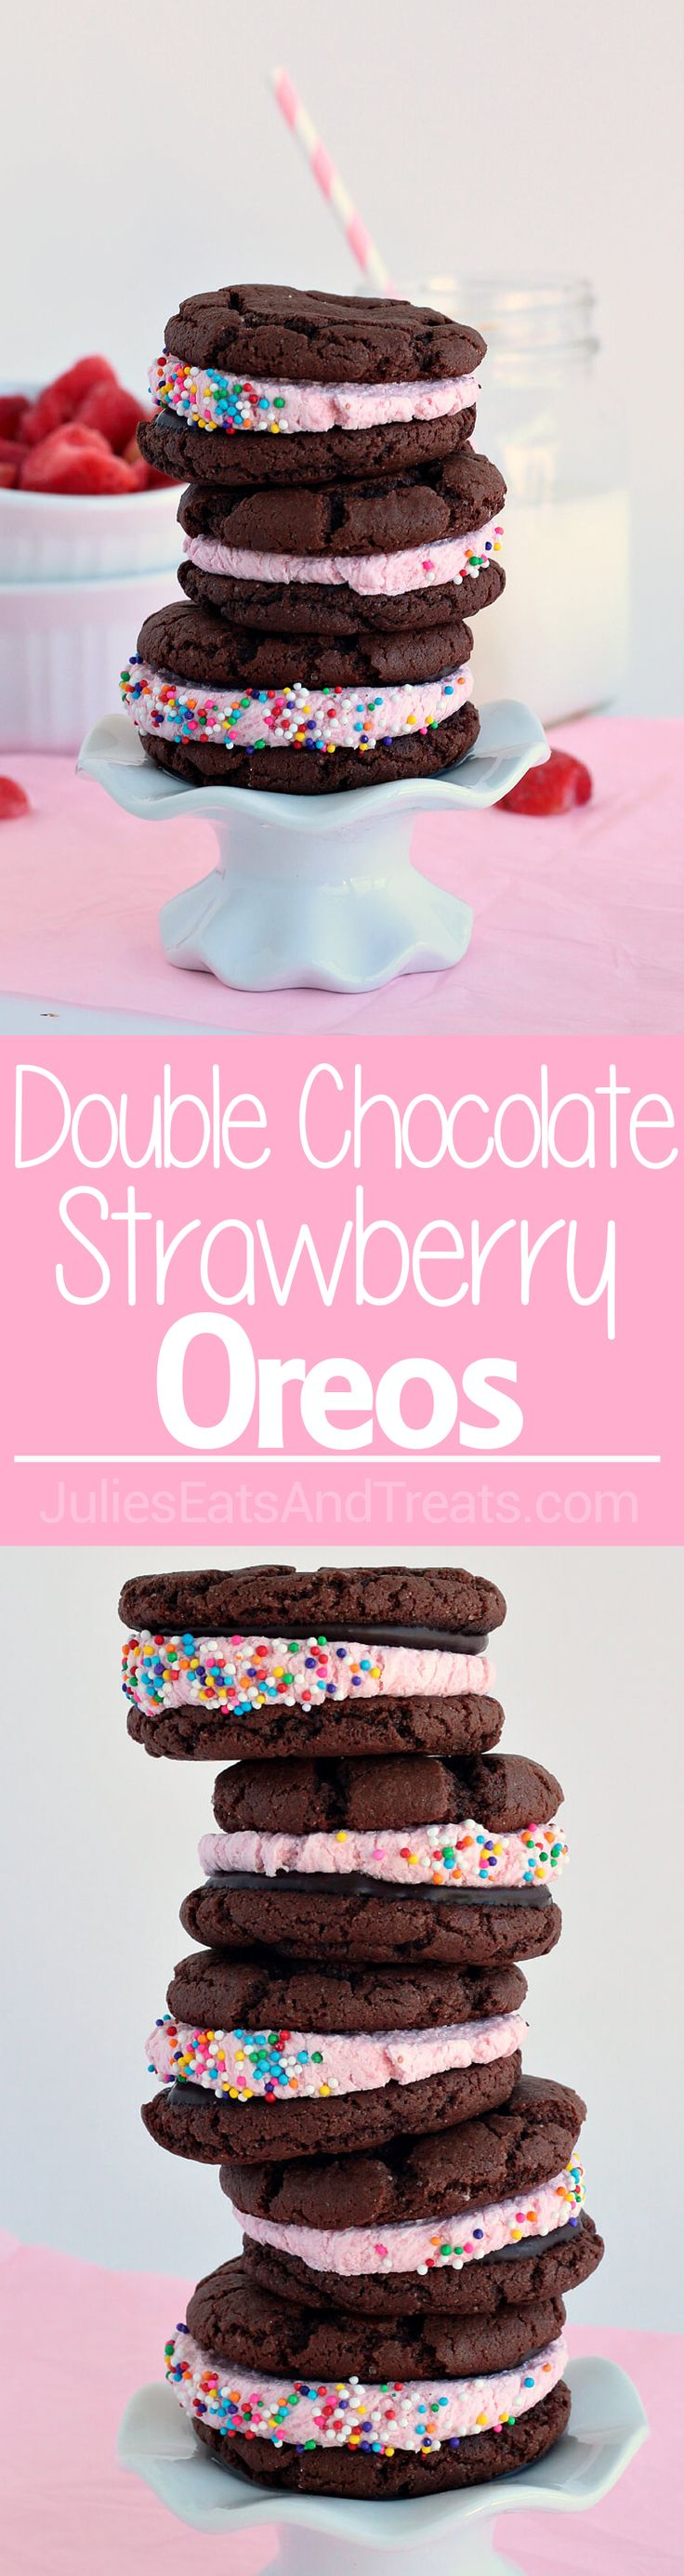 Double Chocolate Strawberry Oreos - super easy cake mix cookies filled with strawberry chocolate ganache and strawberry frosting. Perfect for Valentine's Day! via @julieseats